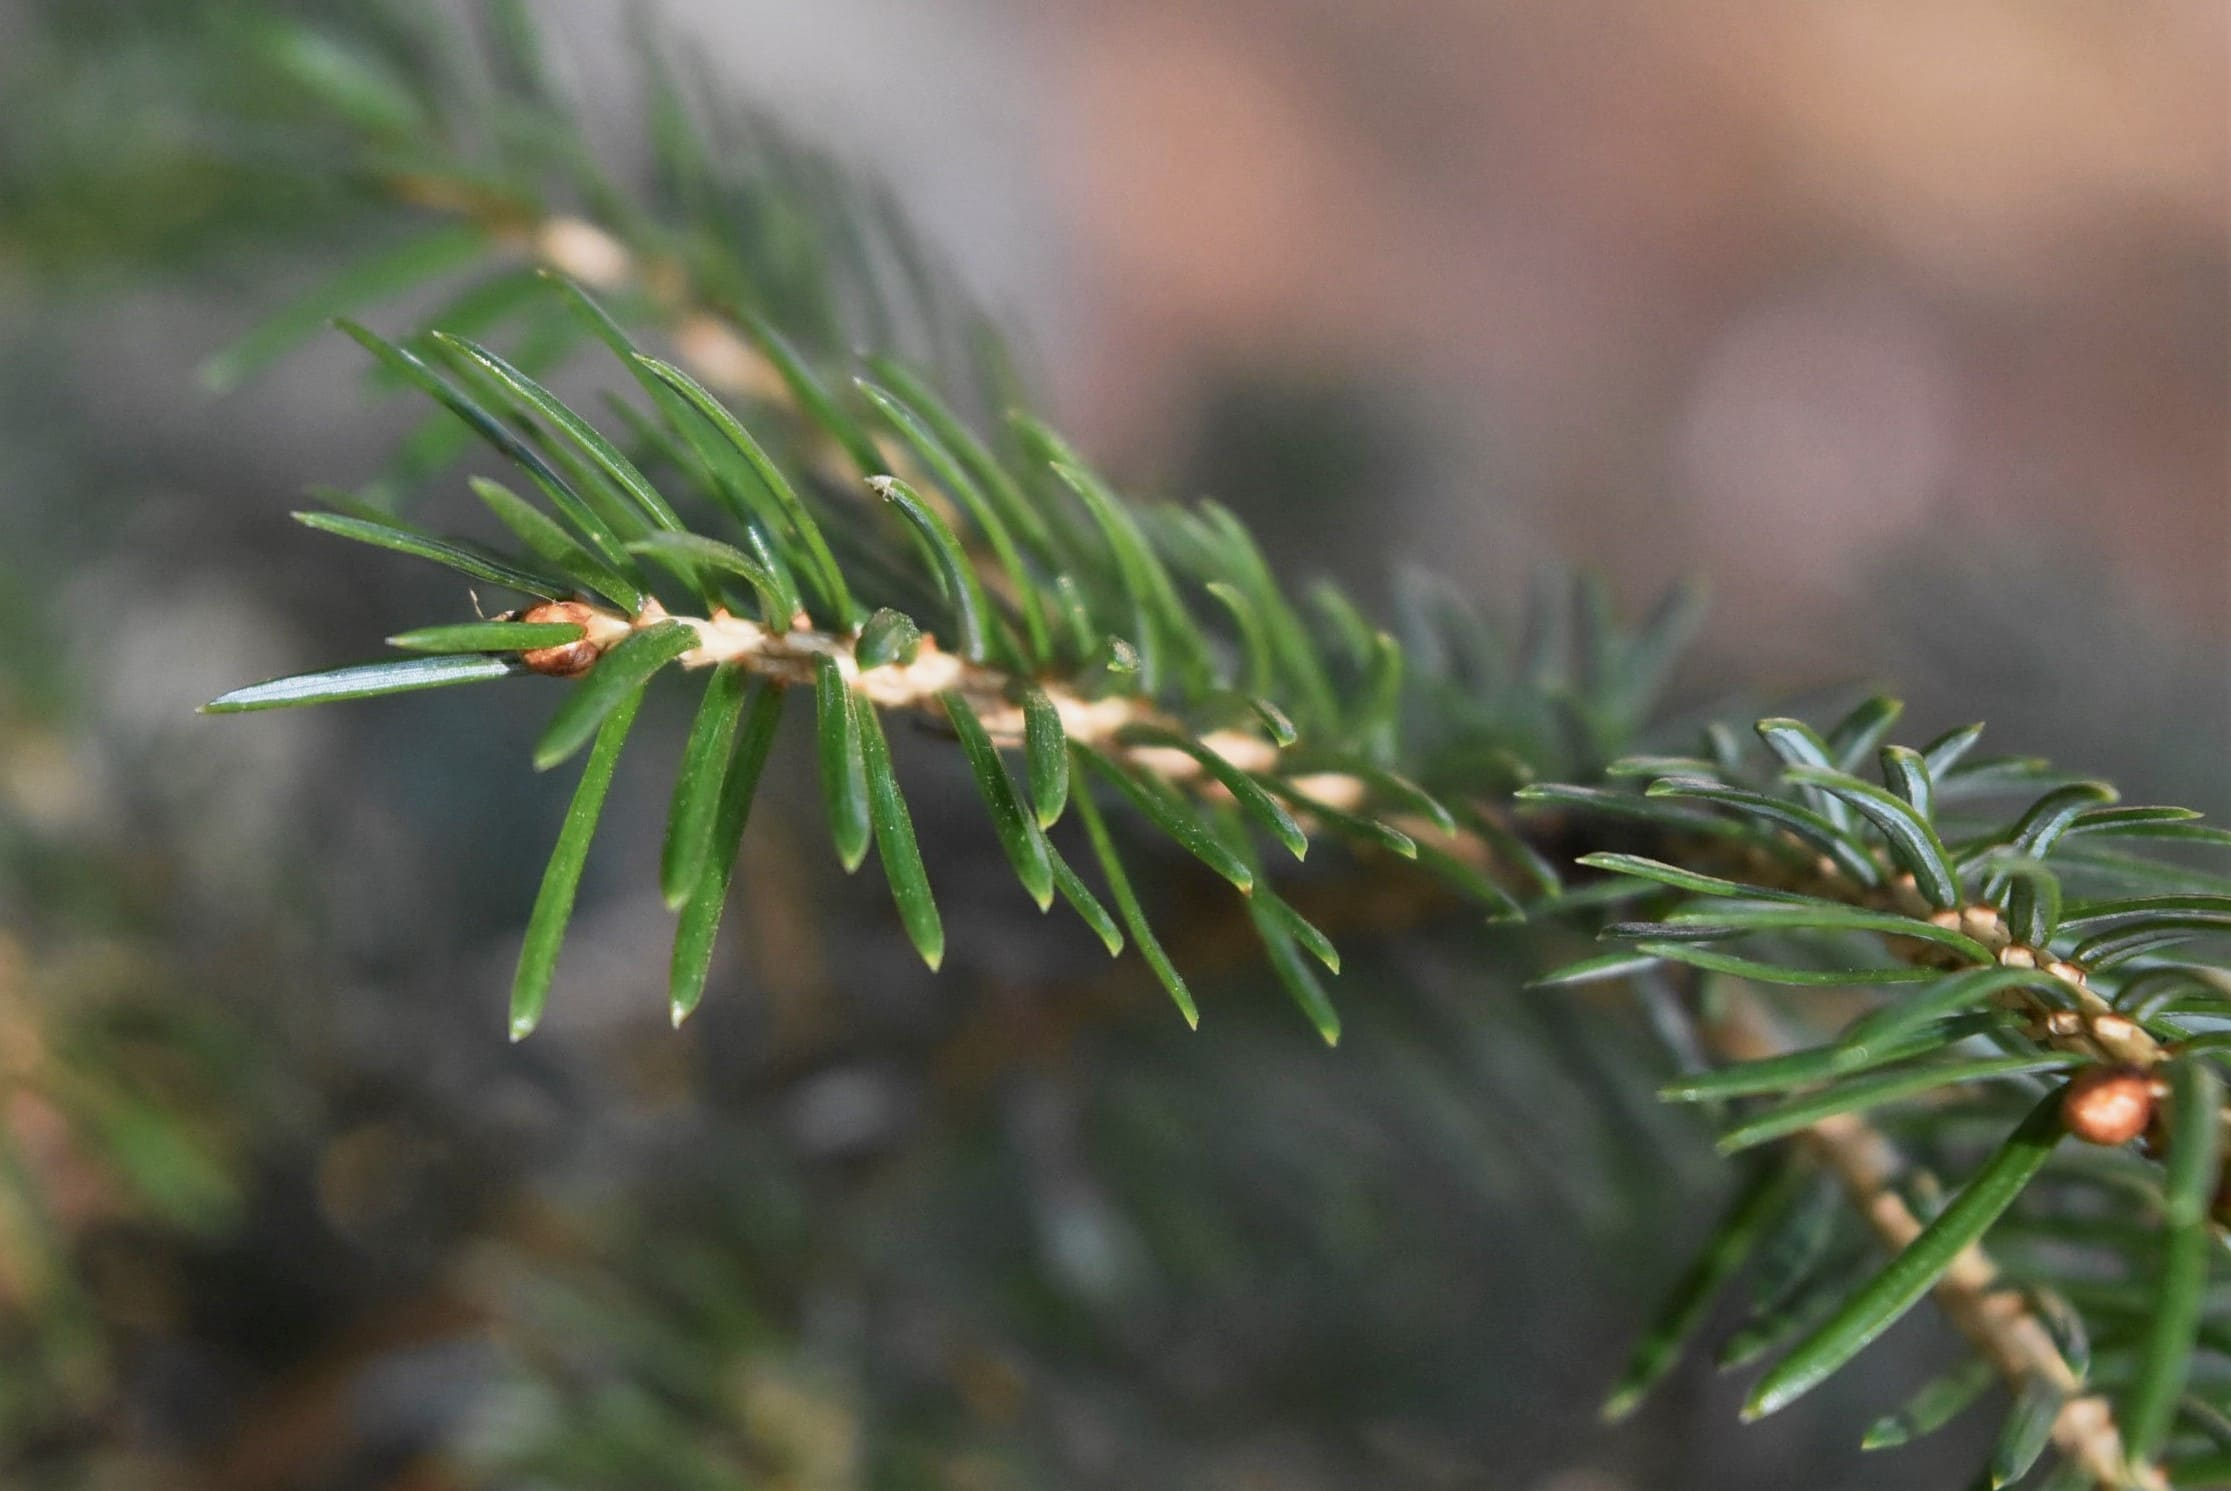 leaves of Japanese spruce